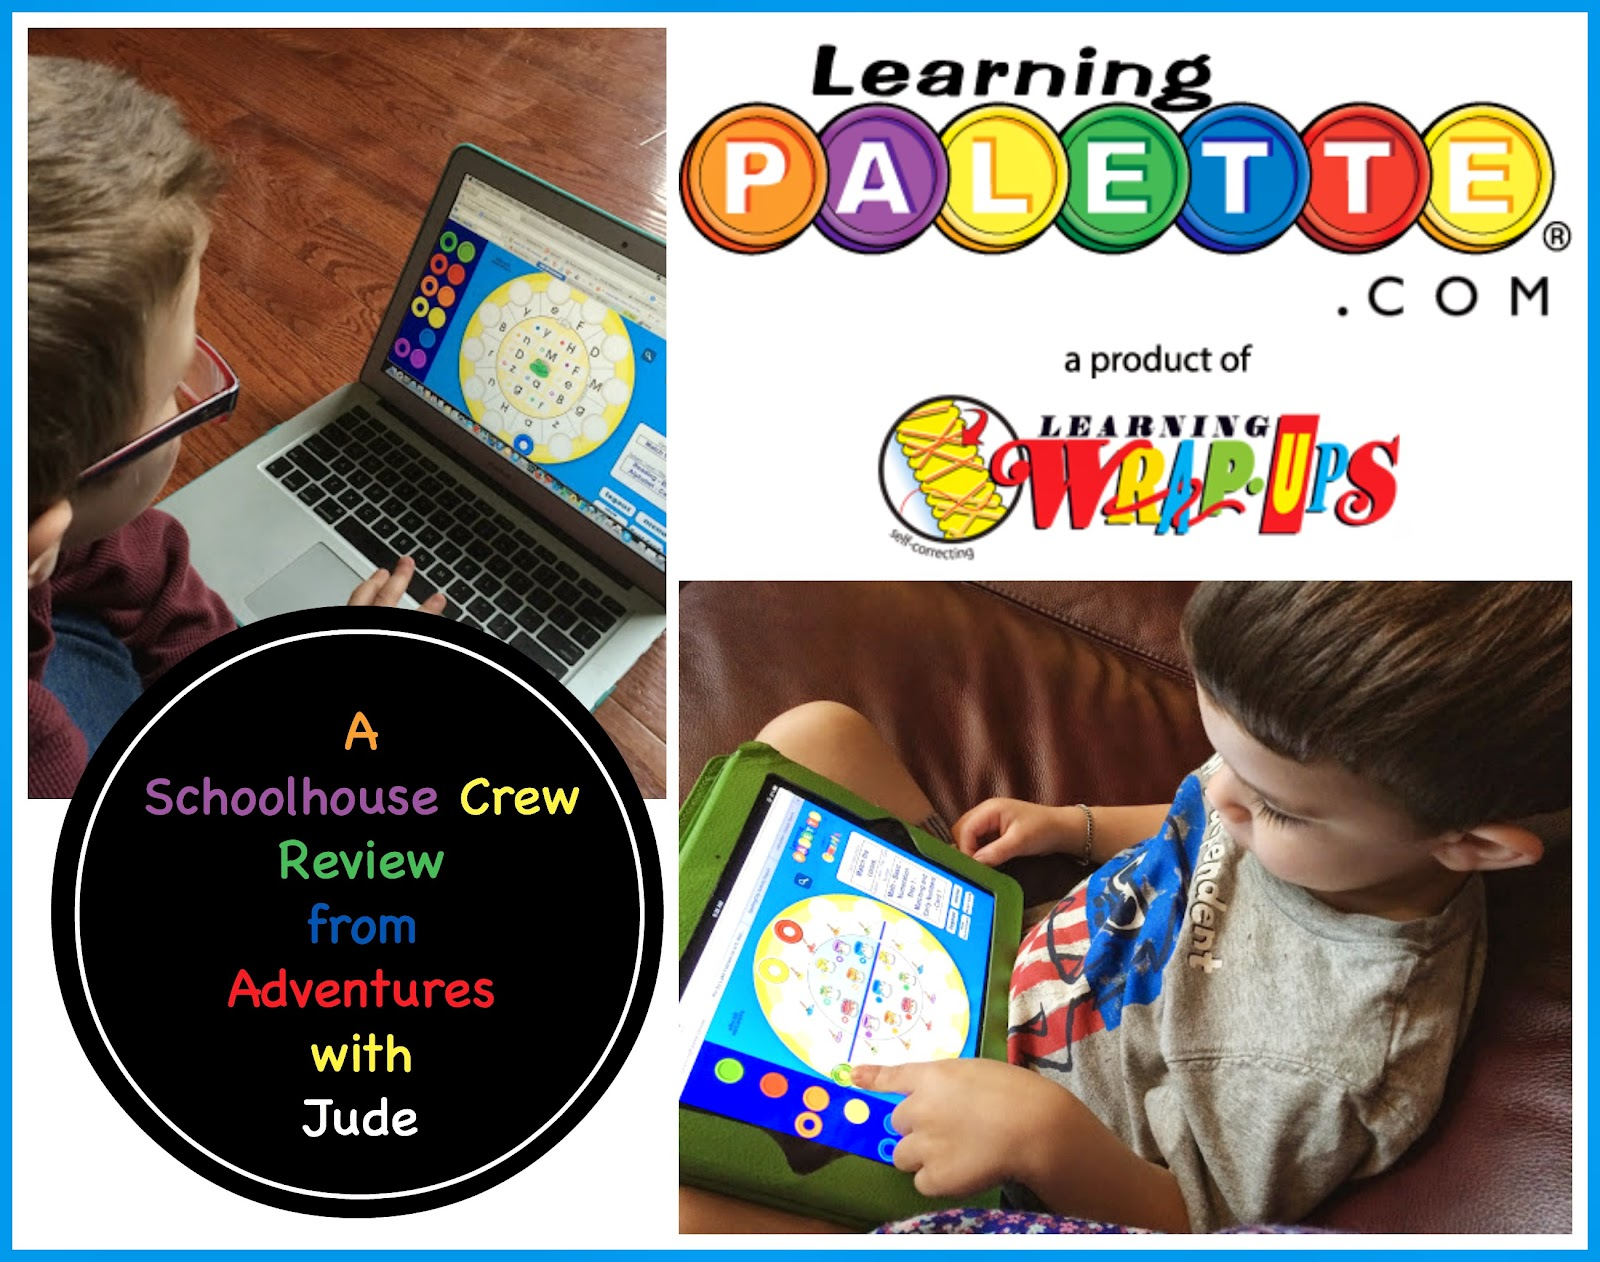 Learning Palette Online Program Review from Adventures with Jude